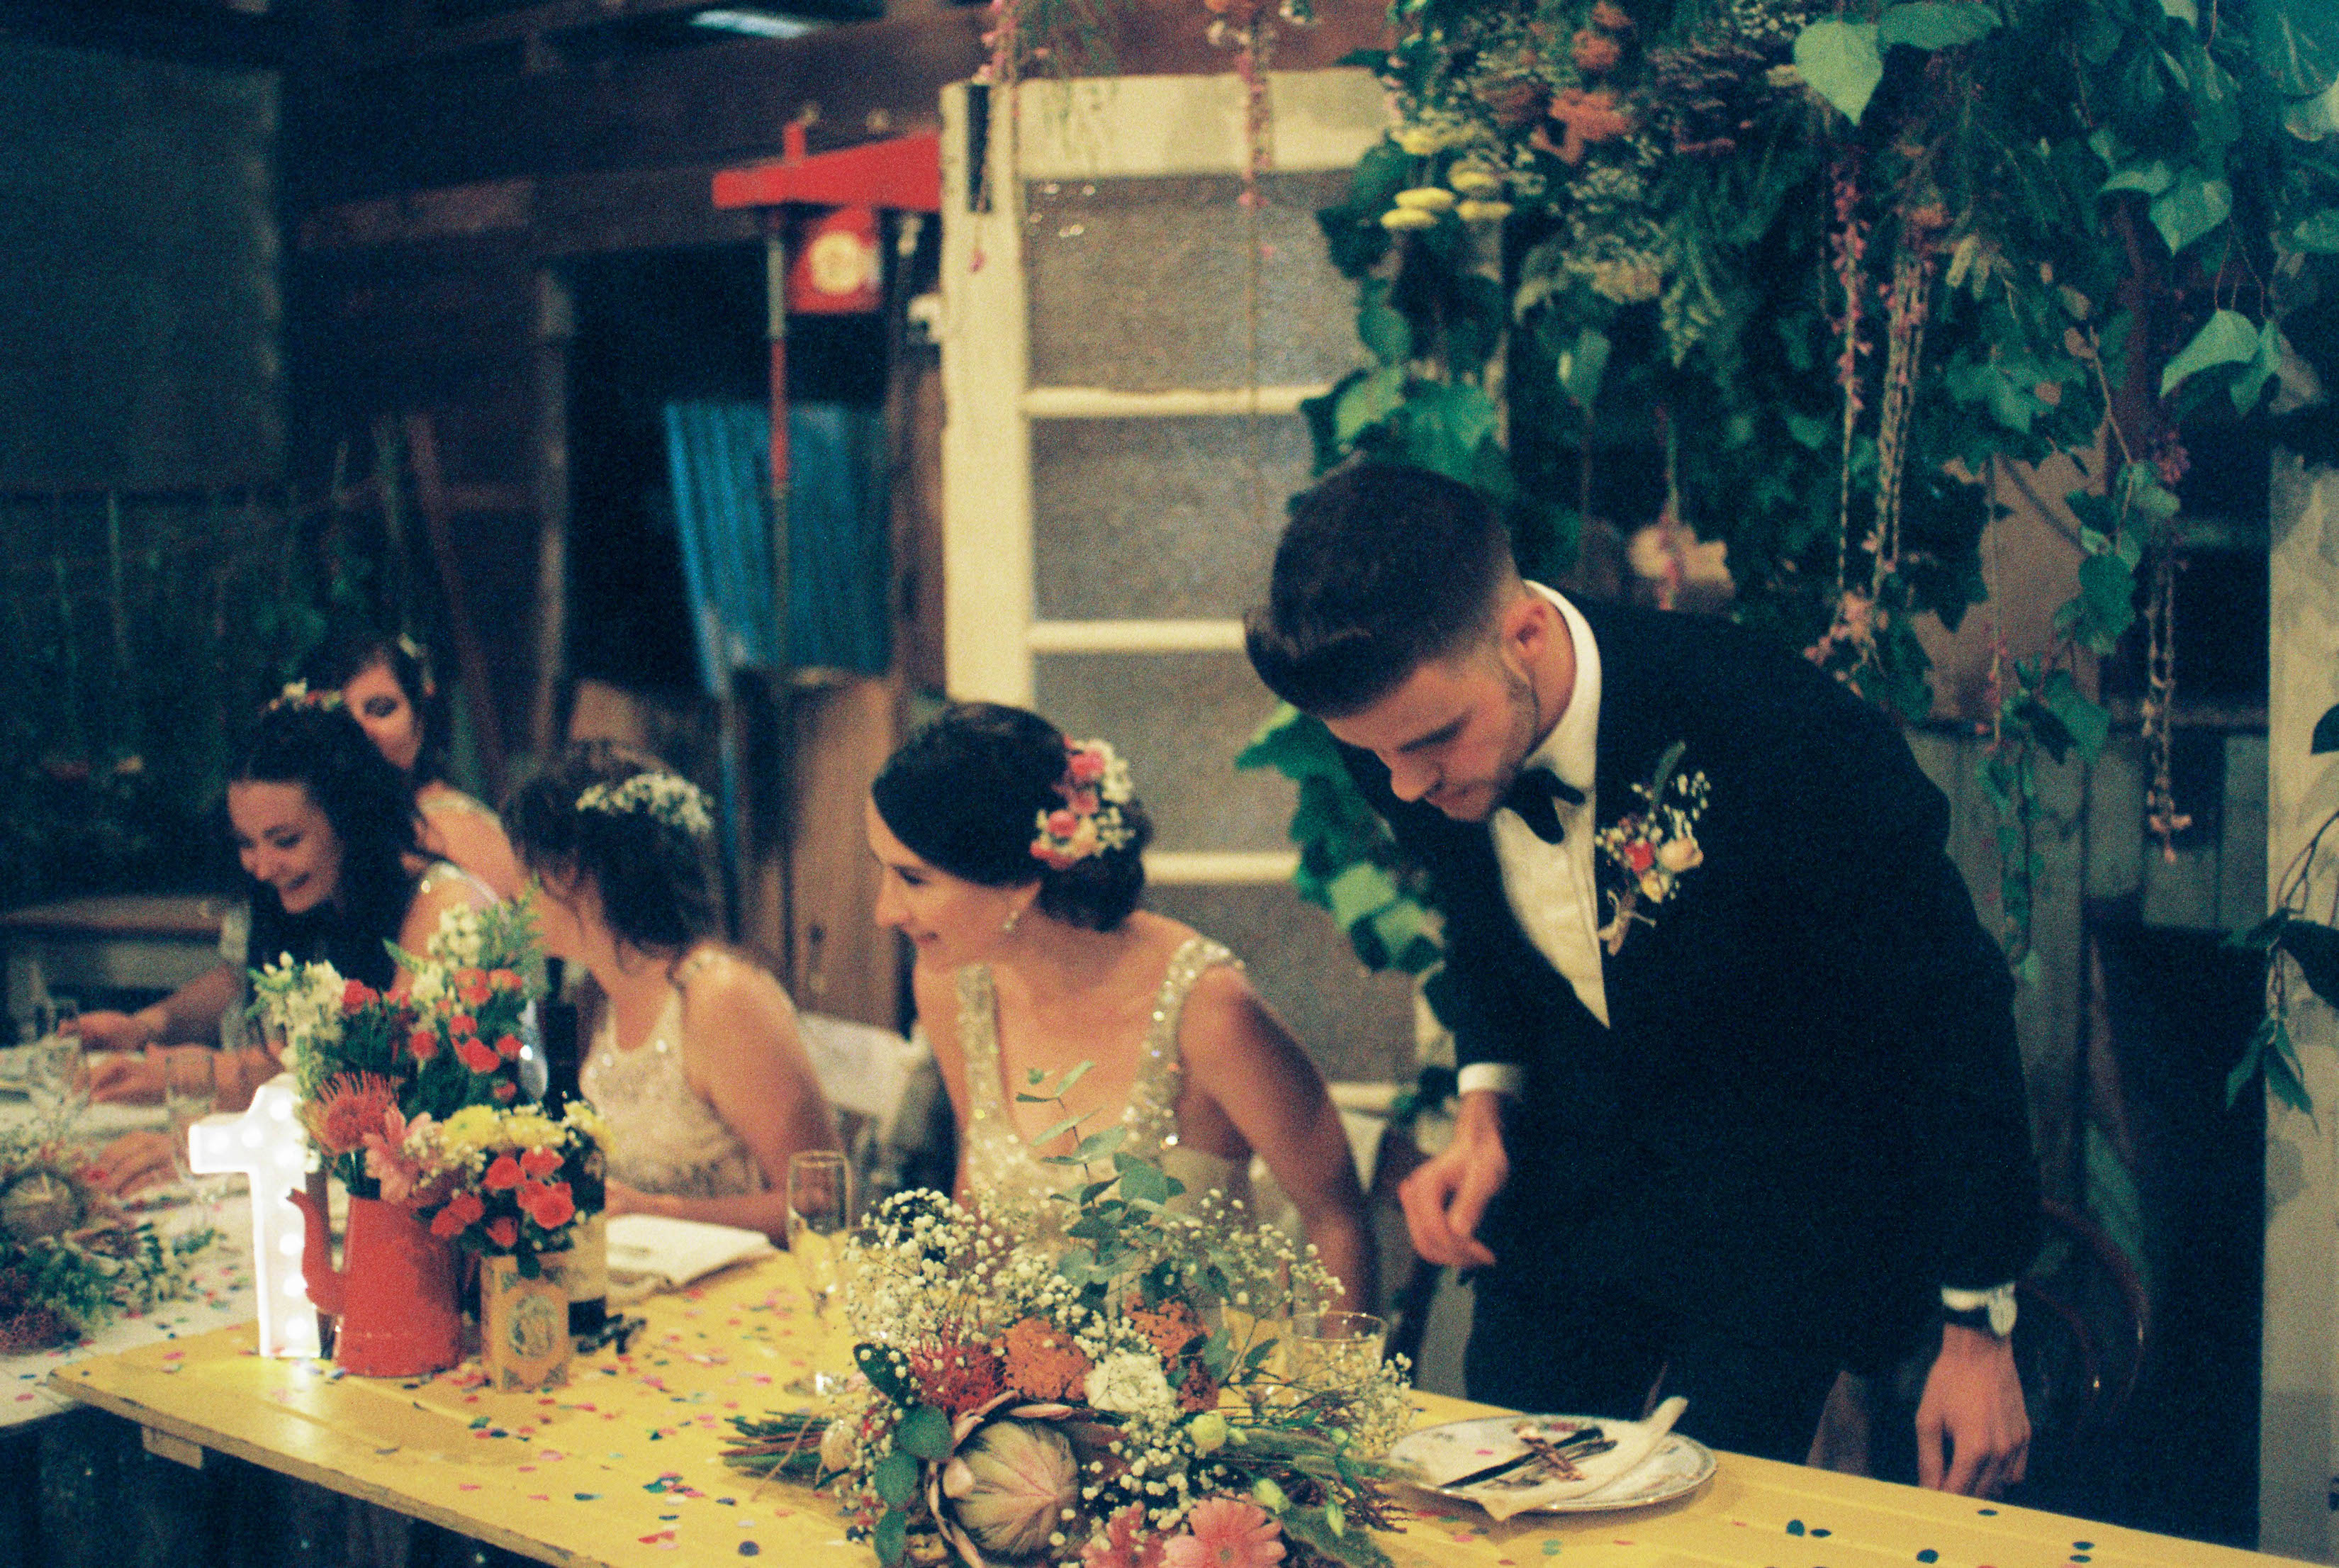 An authentic analogue photography of the bride & groom sitting down at their shearing shed reception